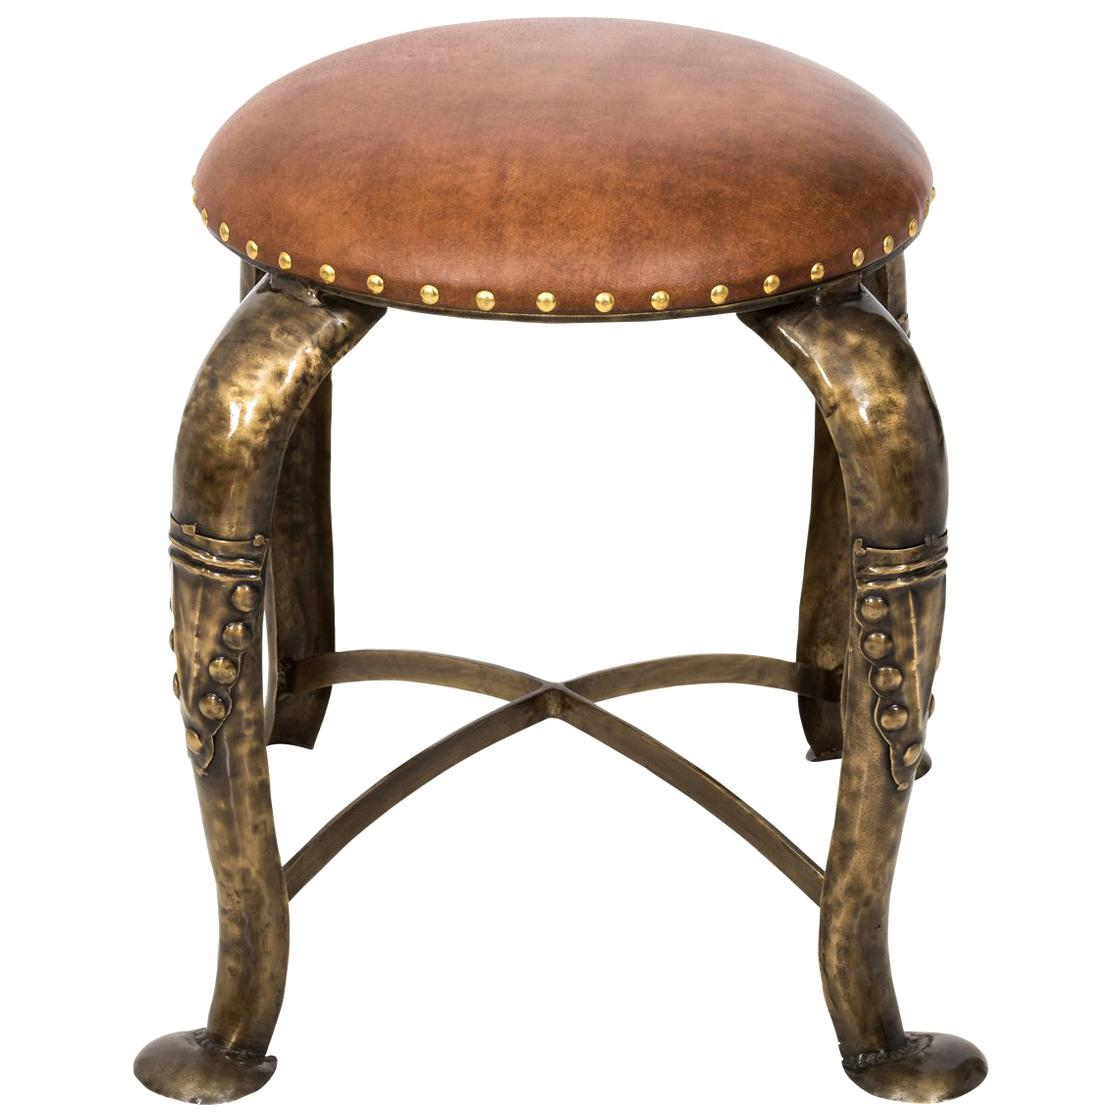 Marvelous Hermes Pippa Leather Campaign Stool At 1Stdibs Gmtry Best Dining Table And Chair Ideas Images Gmtryco